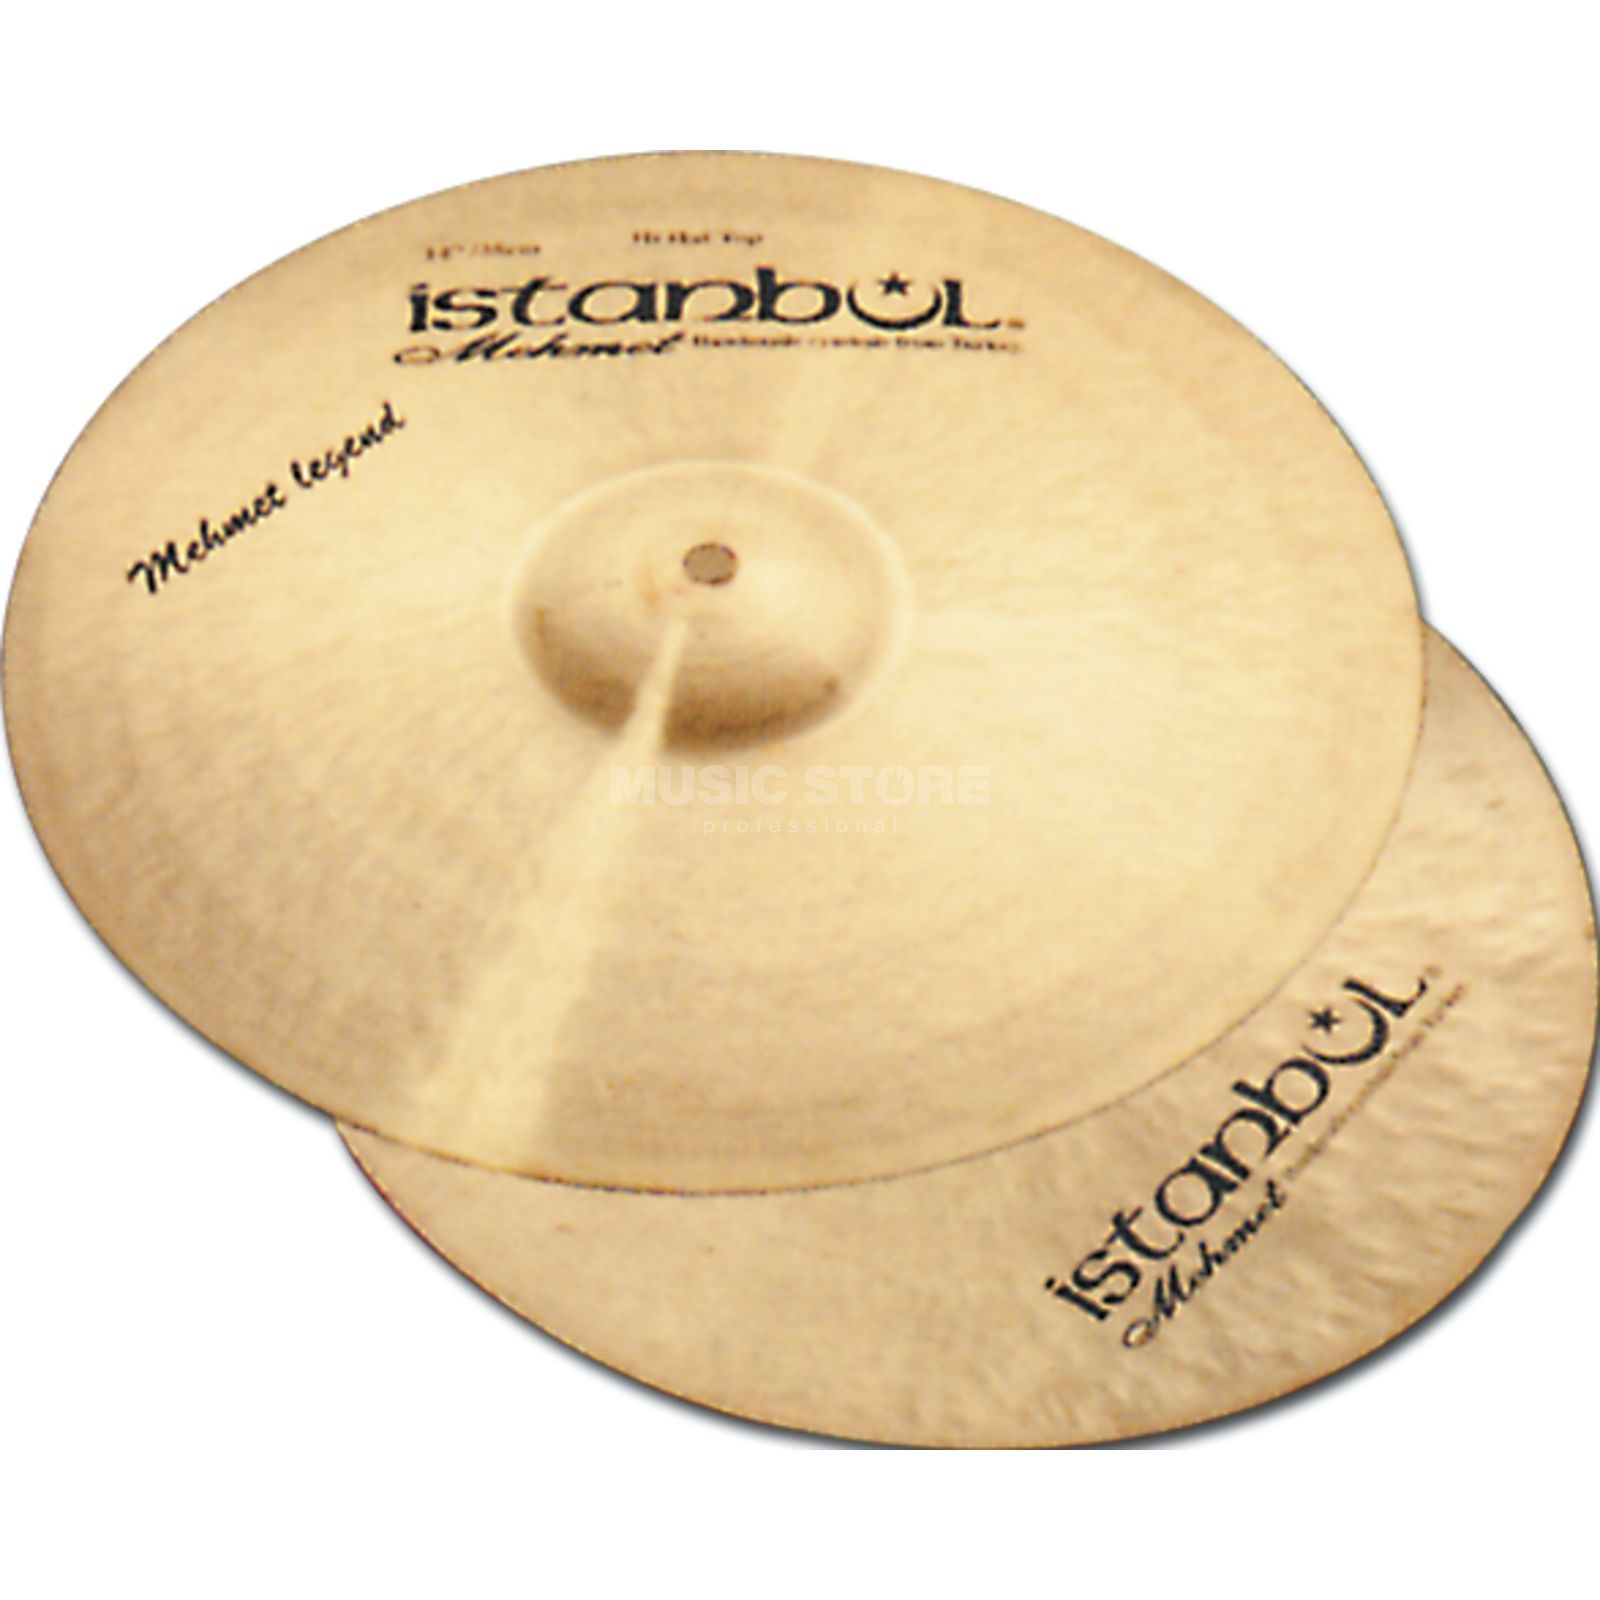 "Istanbul Mehmet Legend HiHat 14"", ML-HH14, Overstock Product Image"